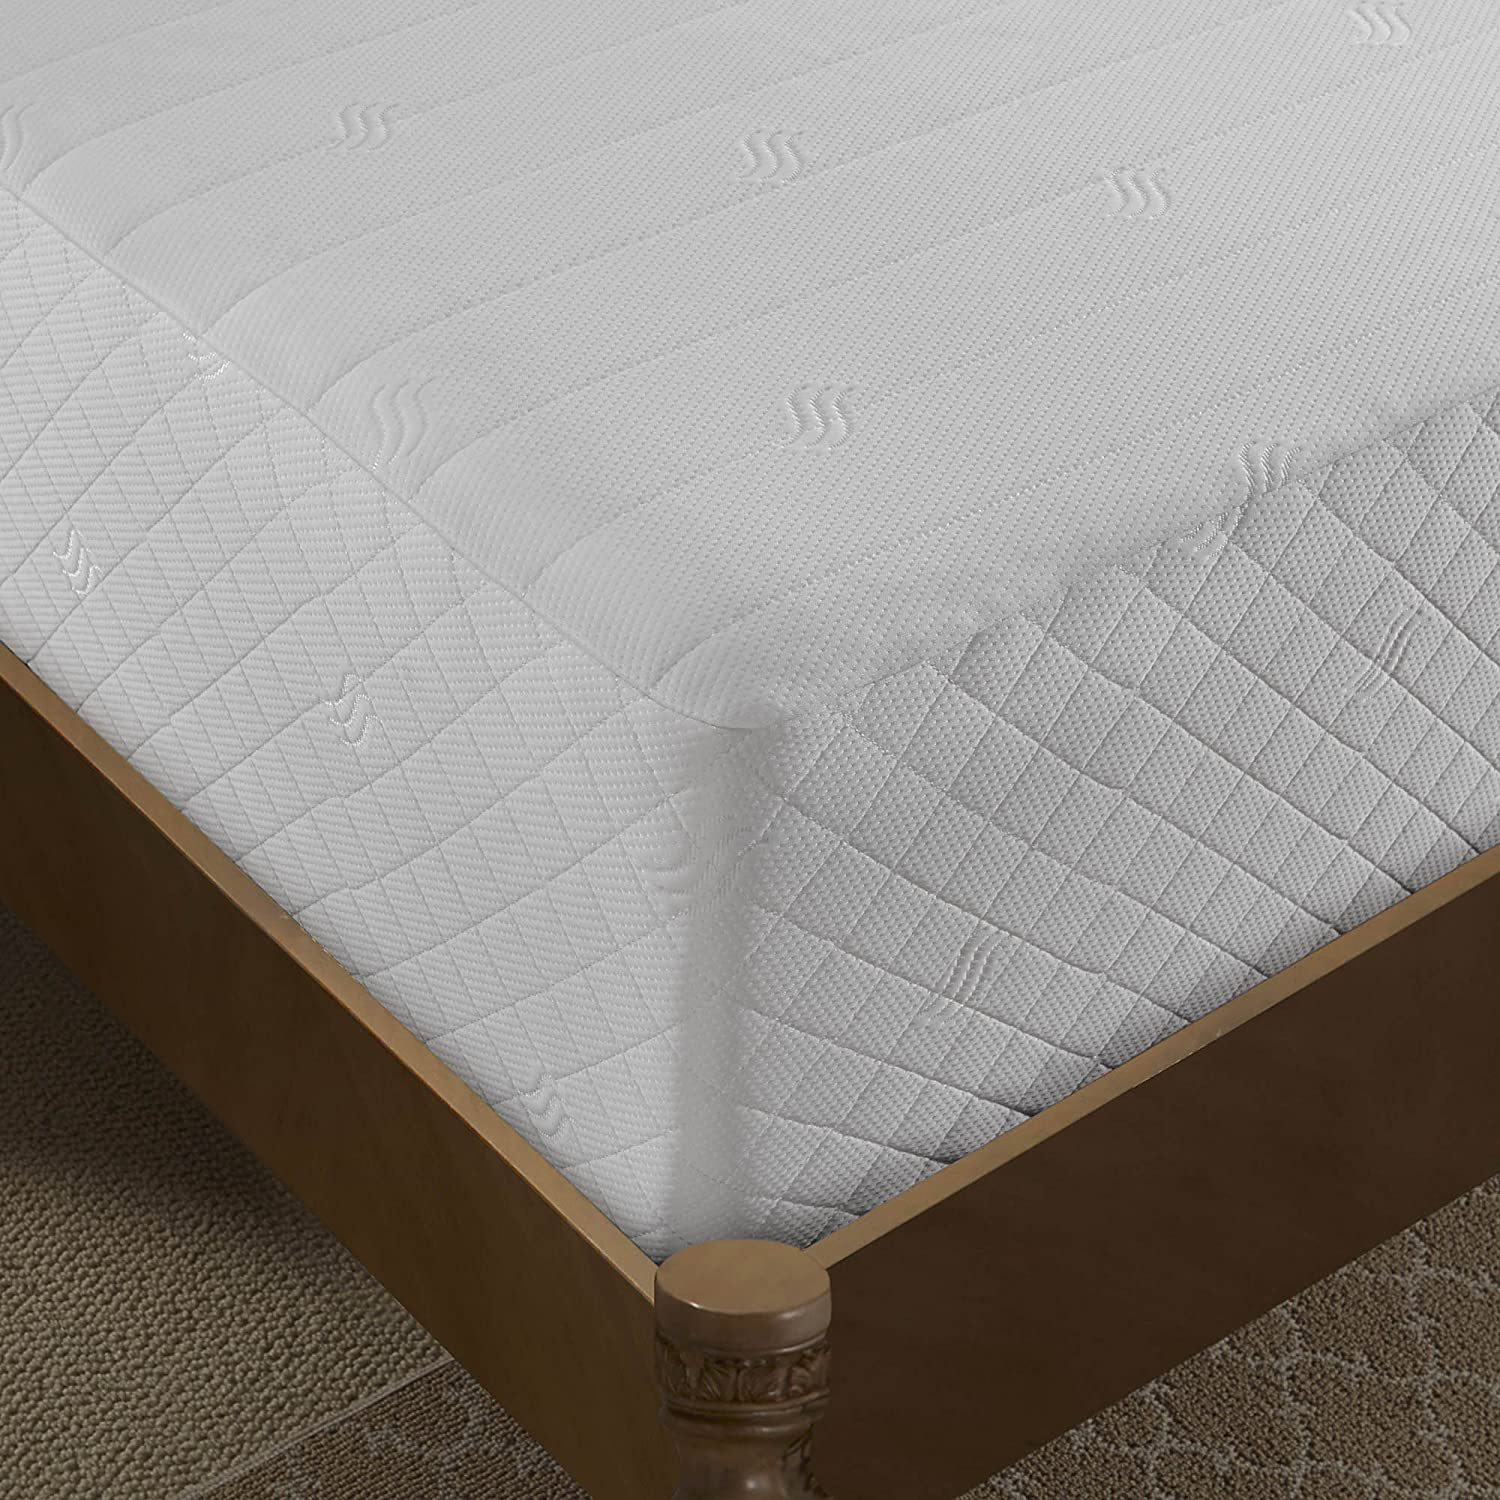 serta dynastymattress amazon foam inch cool king mattress gel memory inc cal breeze dynasty